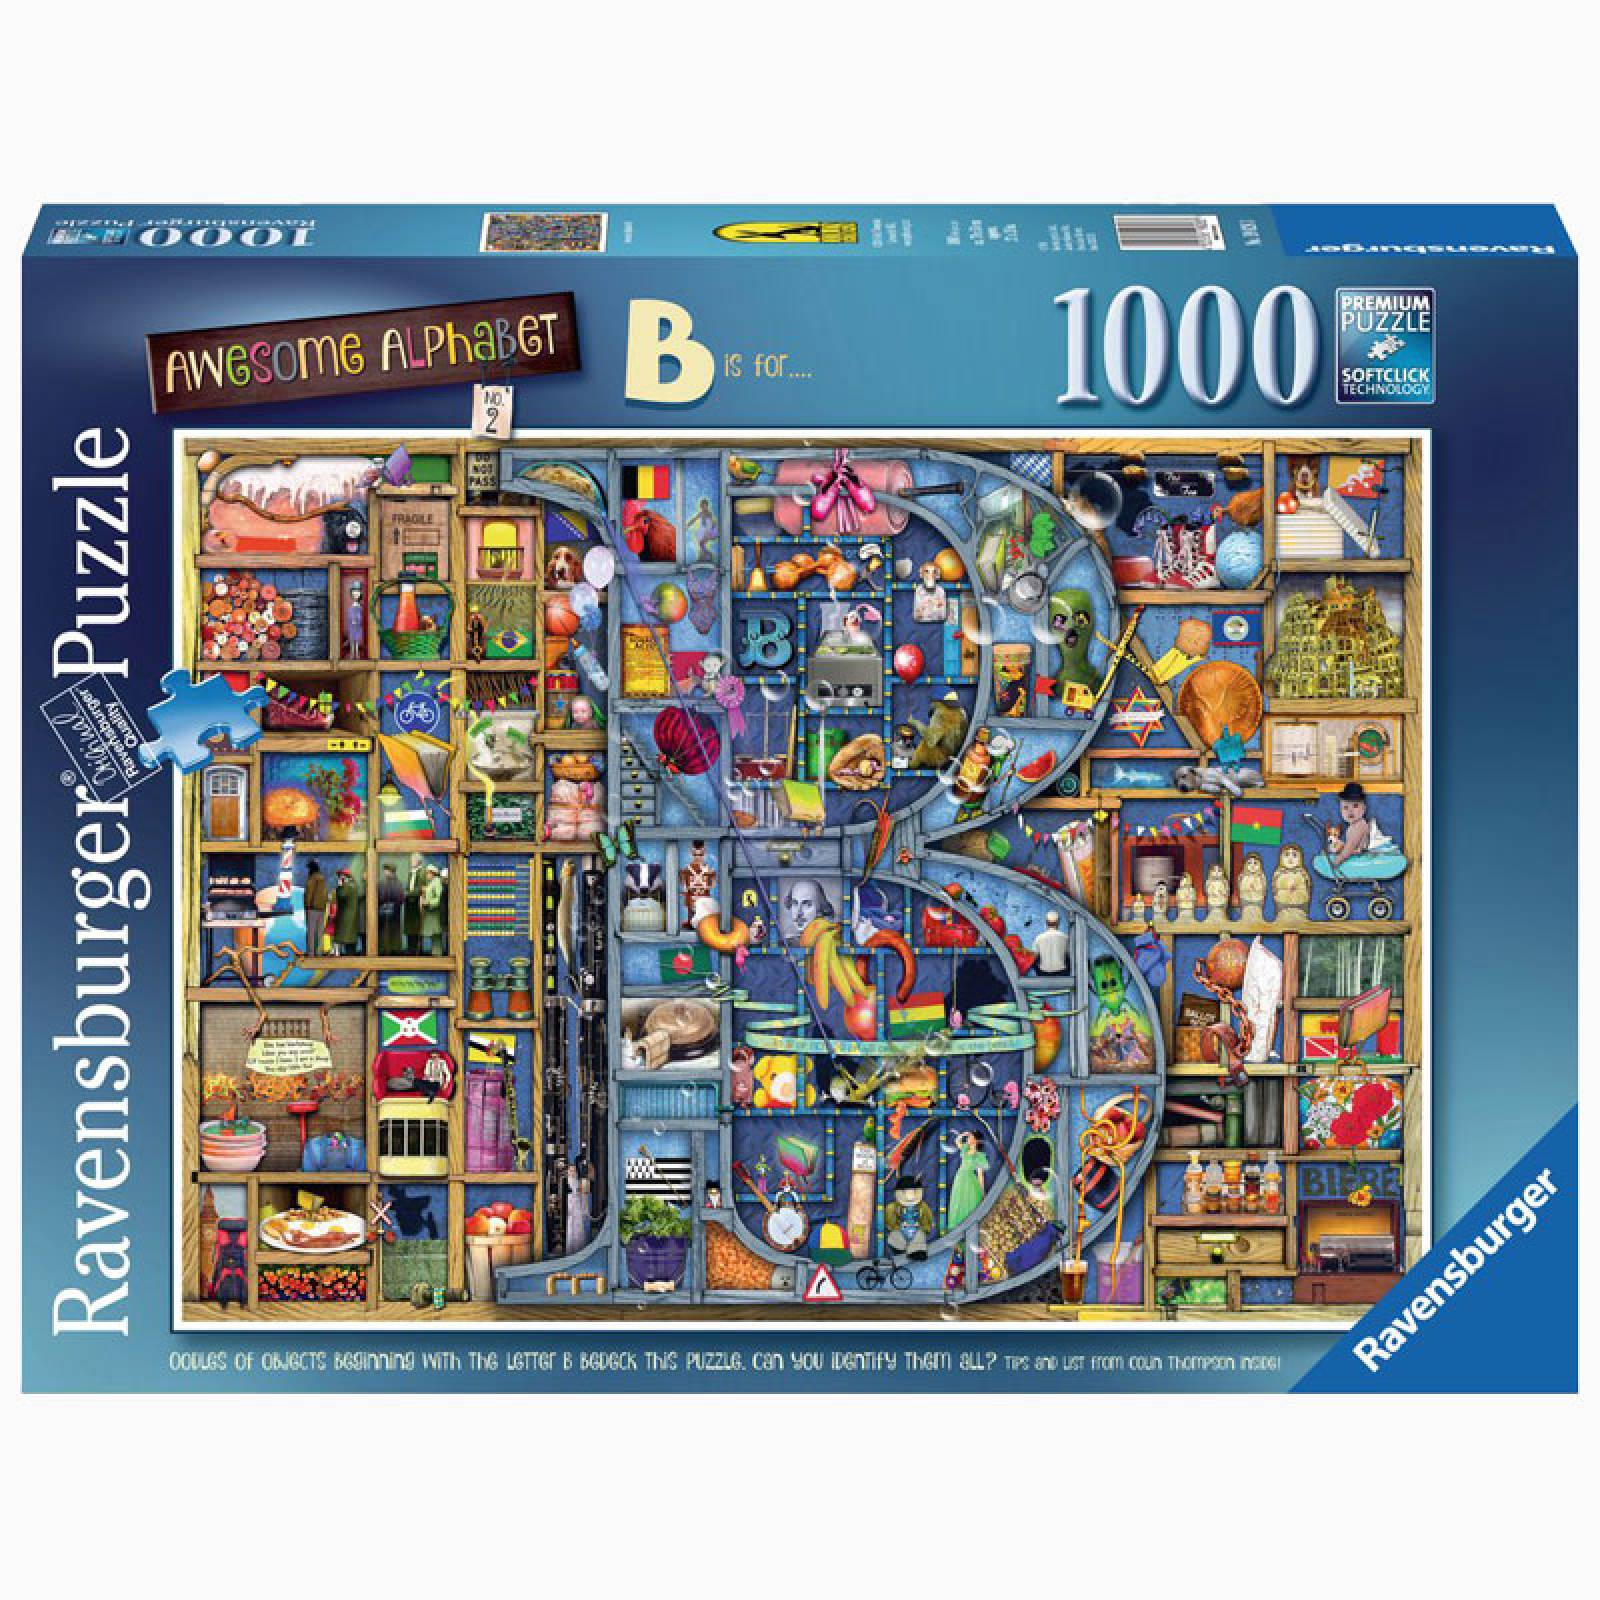 Awesome Alphabet B 1000 Piece Jigsaw Puzzle thumbnails